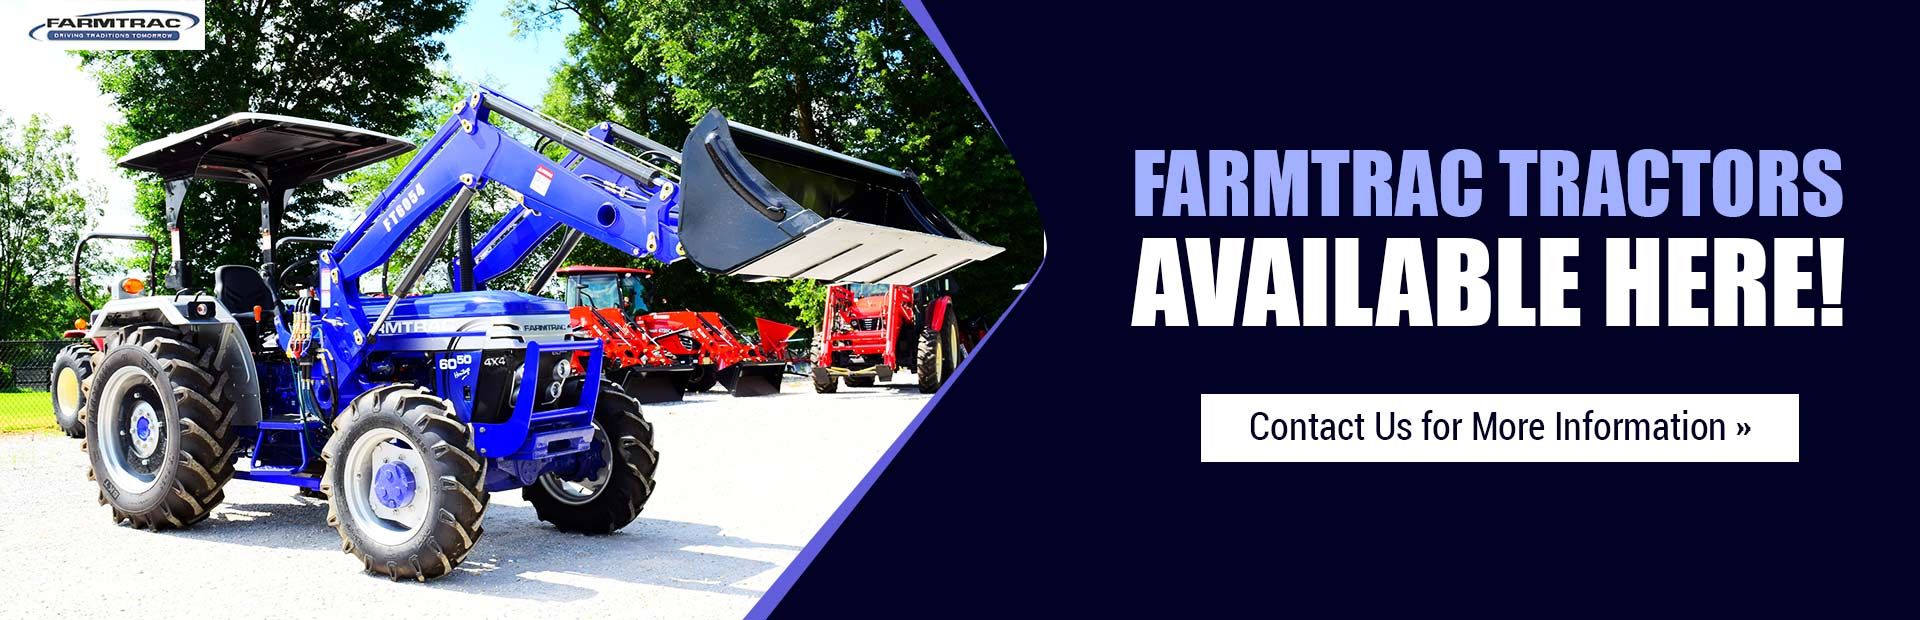 Farmtrac tractors are available here! Contact us for more information.